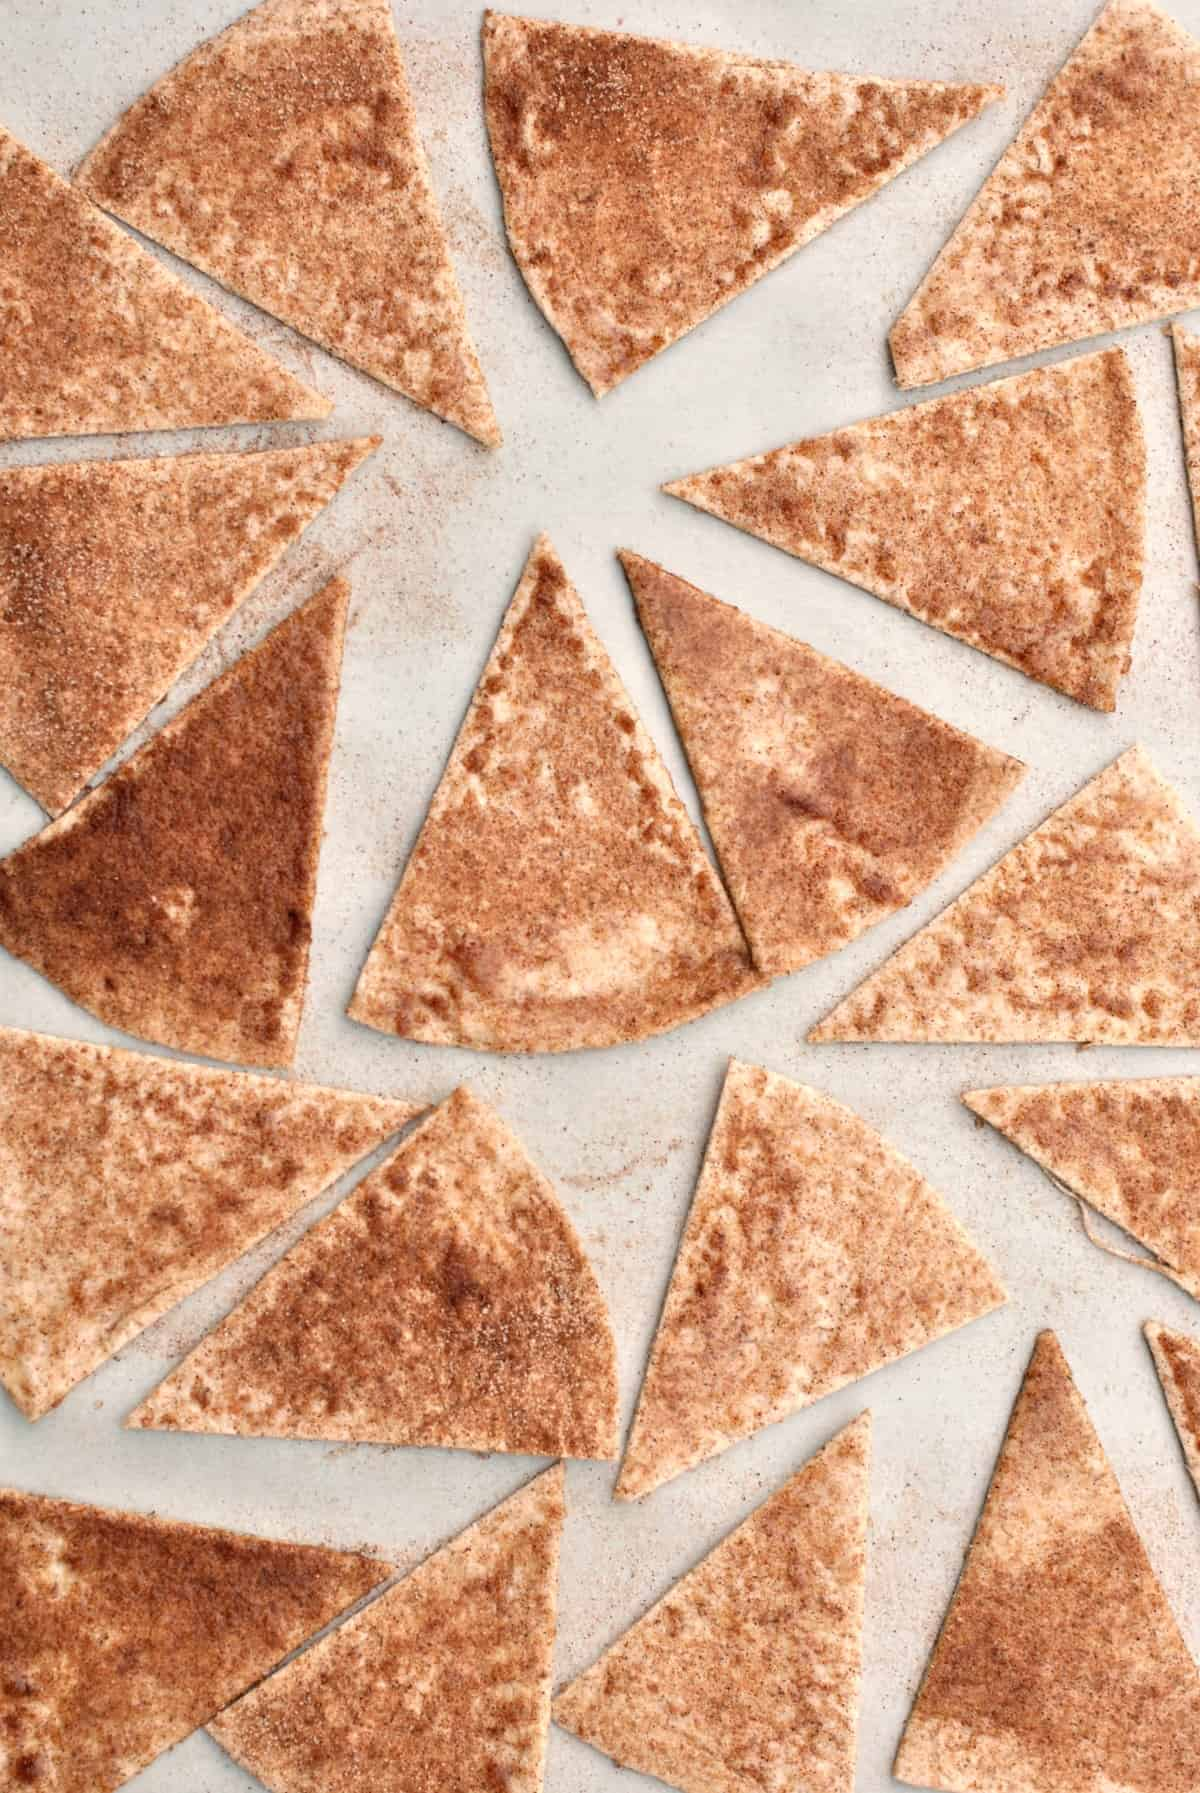 Cinnamon sugar tortilla chips on a baking sheet.